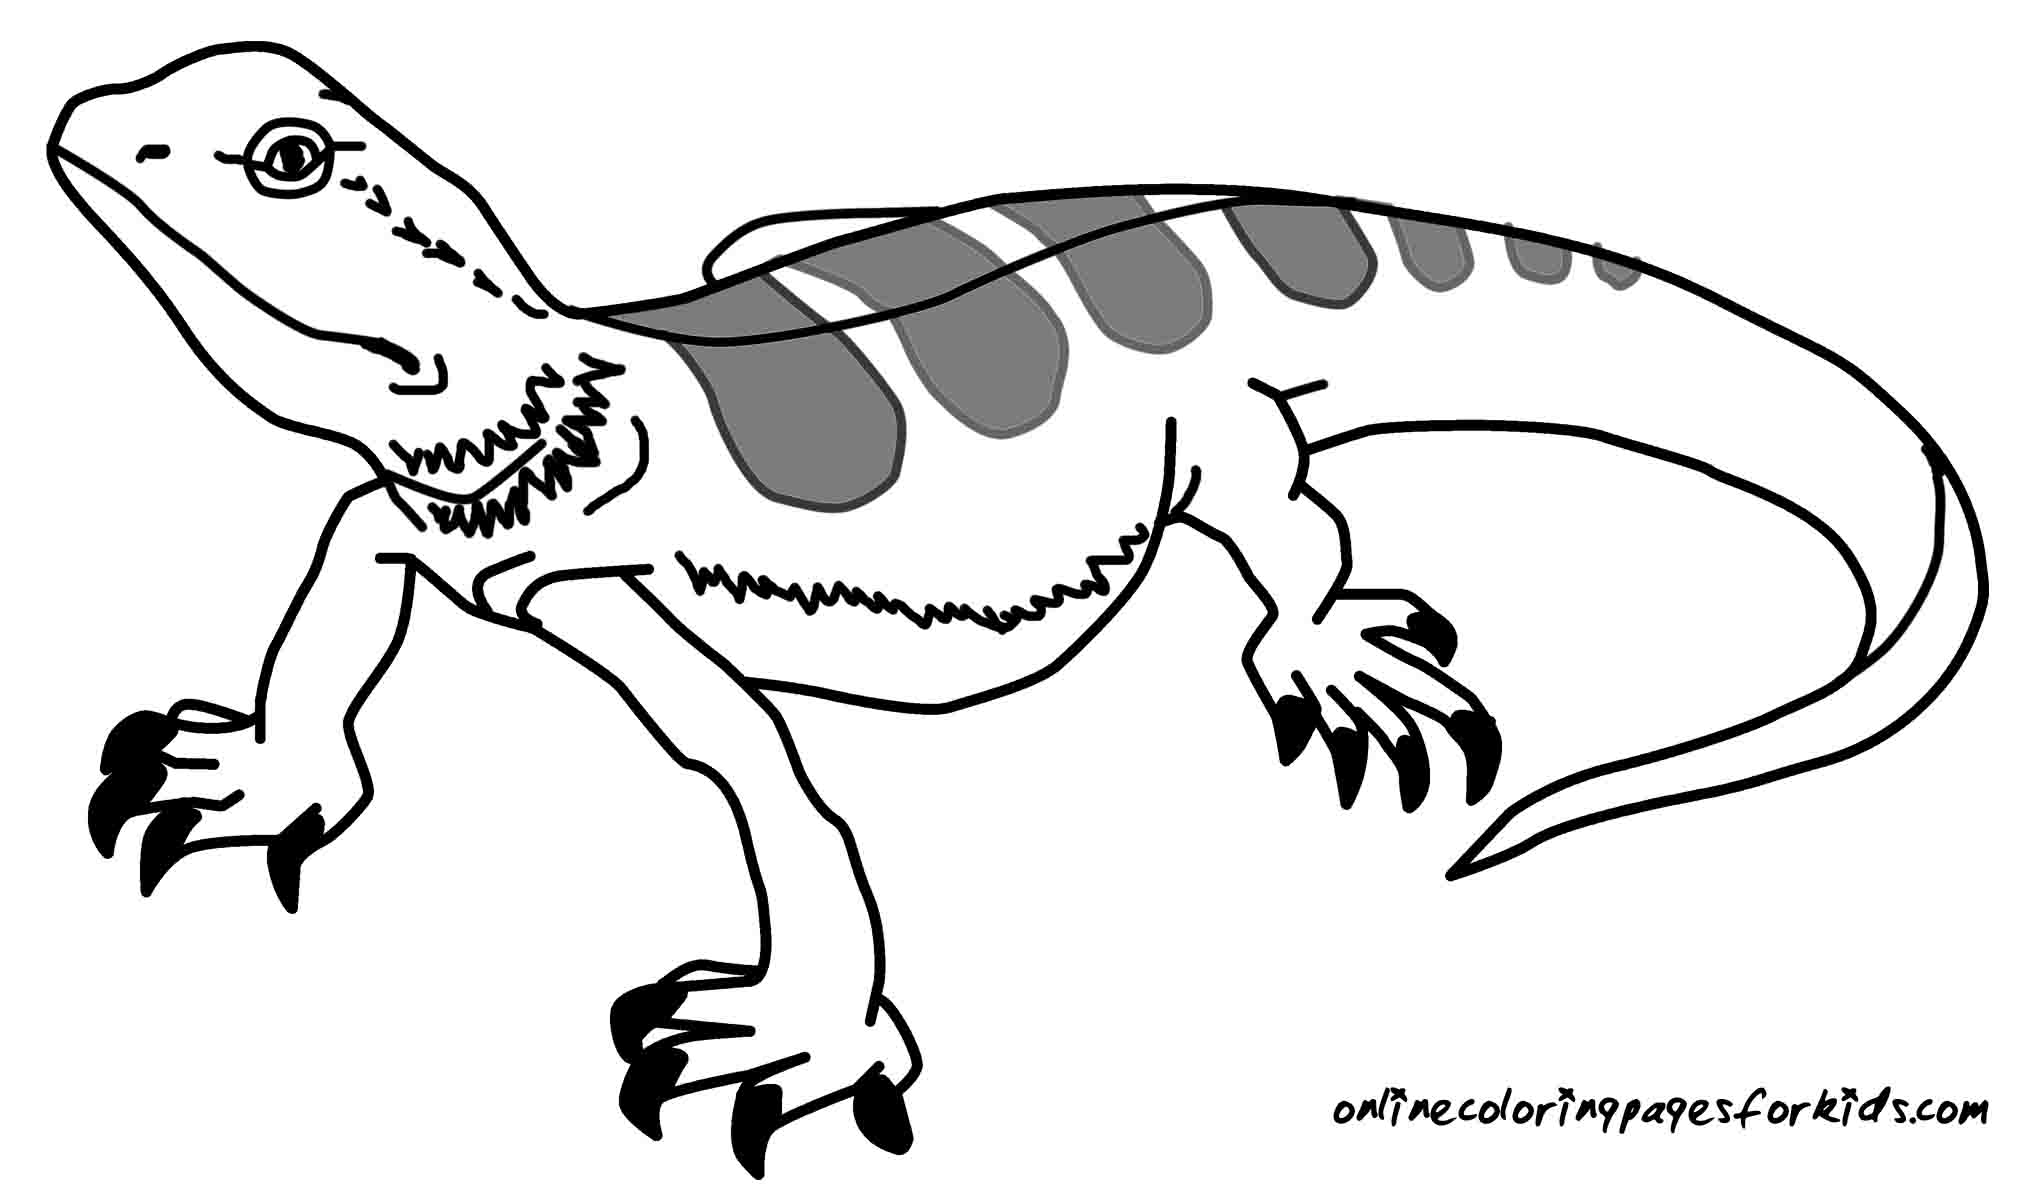 2040x1202 Reptile Coloring Pages To Download And Print For Free